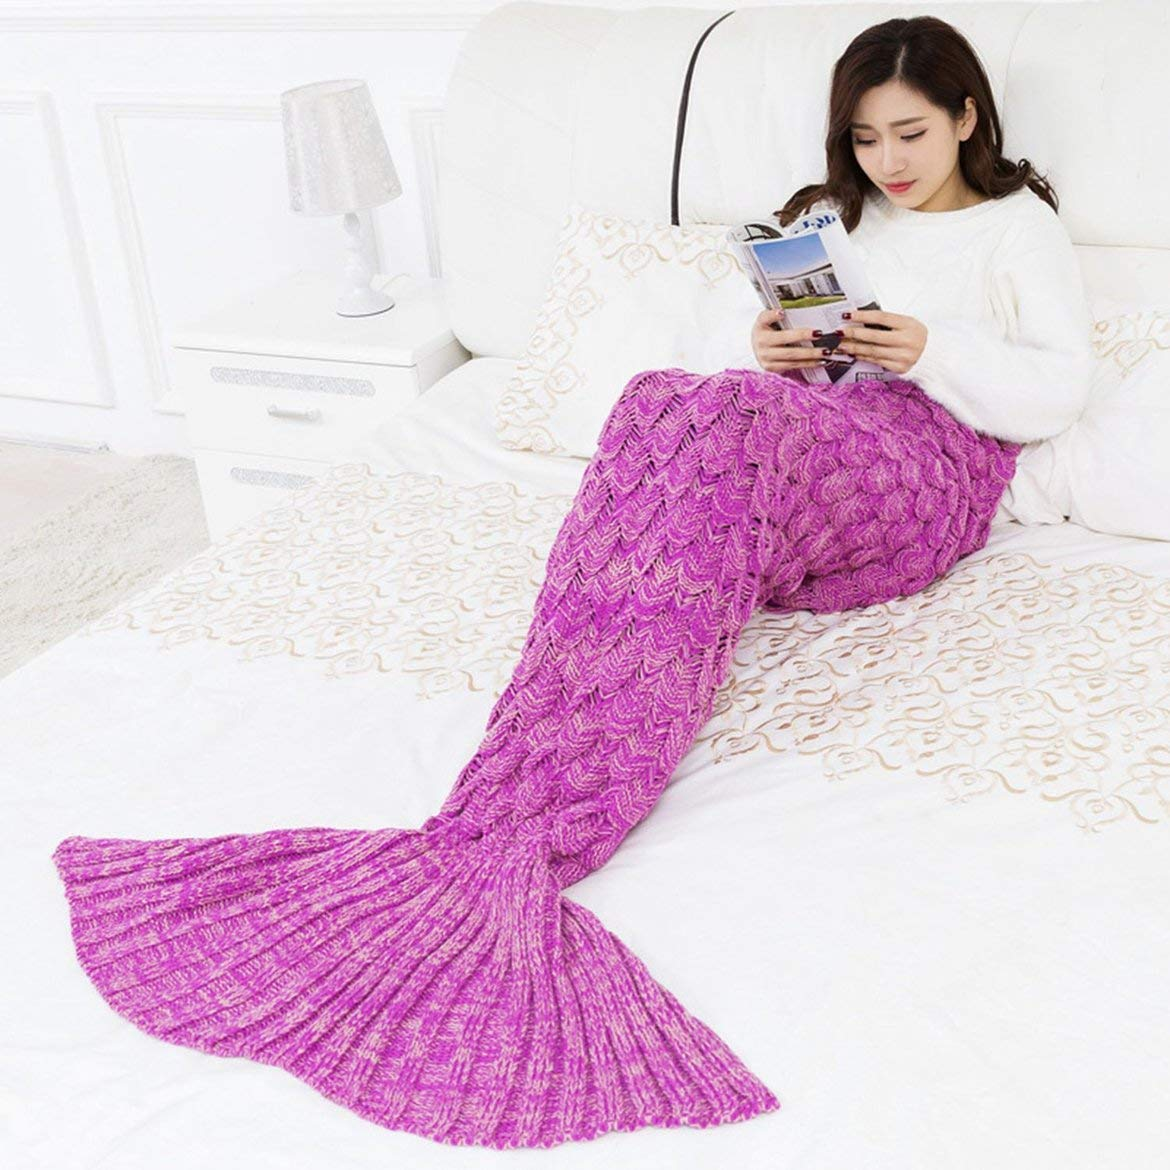 Handmade Mermaid Tail Blanket,INS Sofa Bedding Quilt Rug Knit Blanket, Gorgeous & Cosy Mermaid Blanke/Sleeping Bag/crocheted bag for Adults and Kids - Crimson 145x70CM ( Color : Crimson , Size : - ) by Oudan